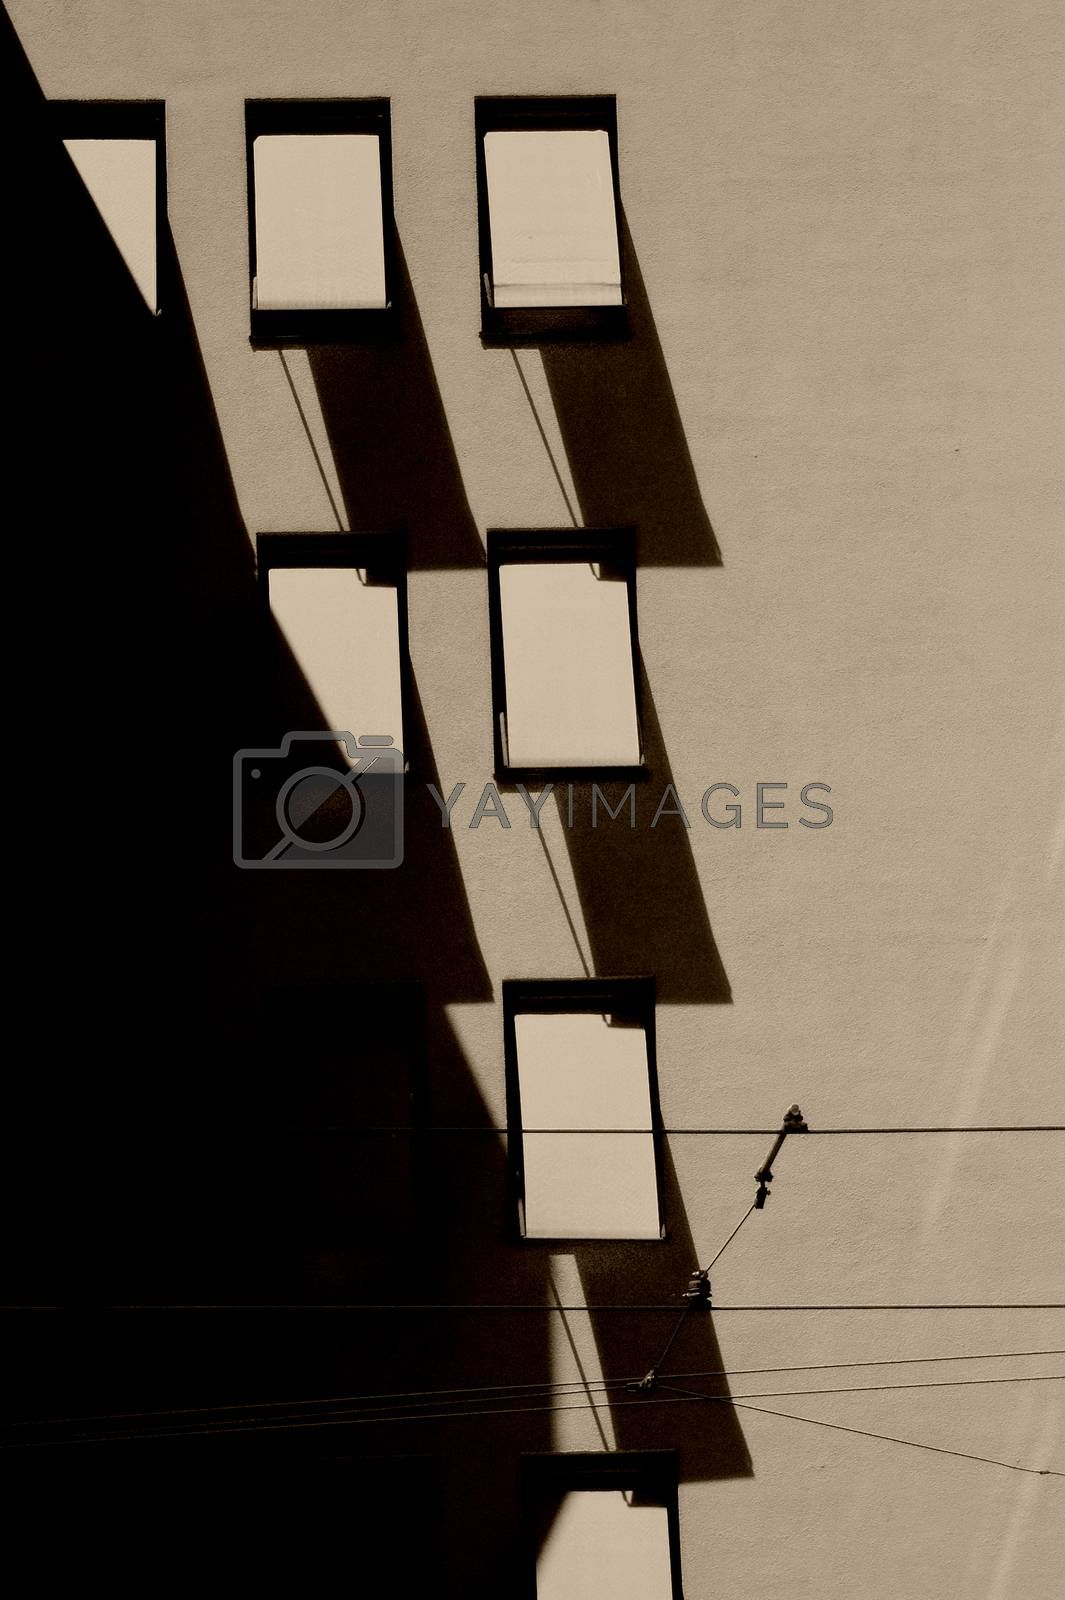 Royalty free image of Abstract window blinds by ginton